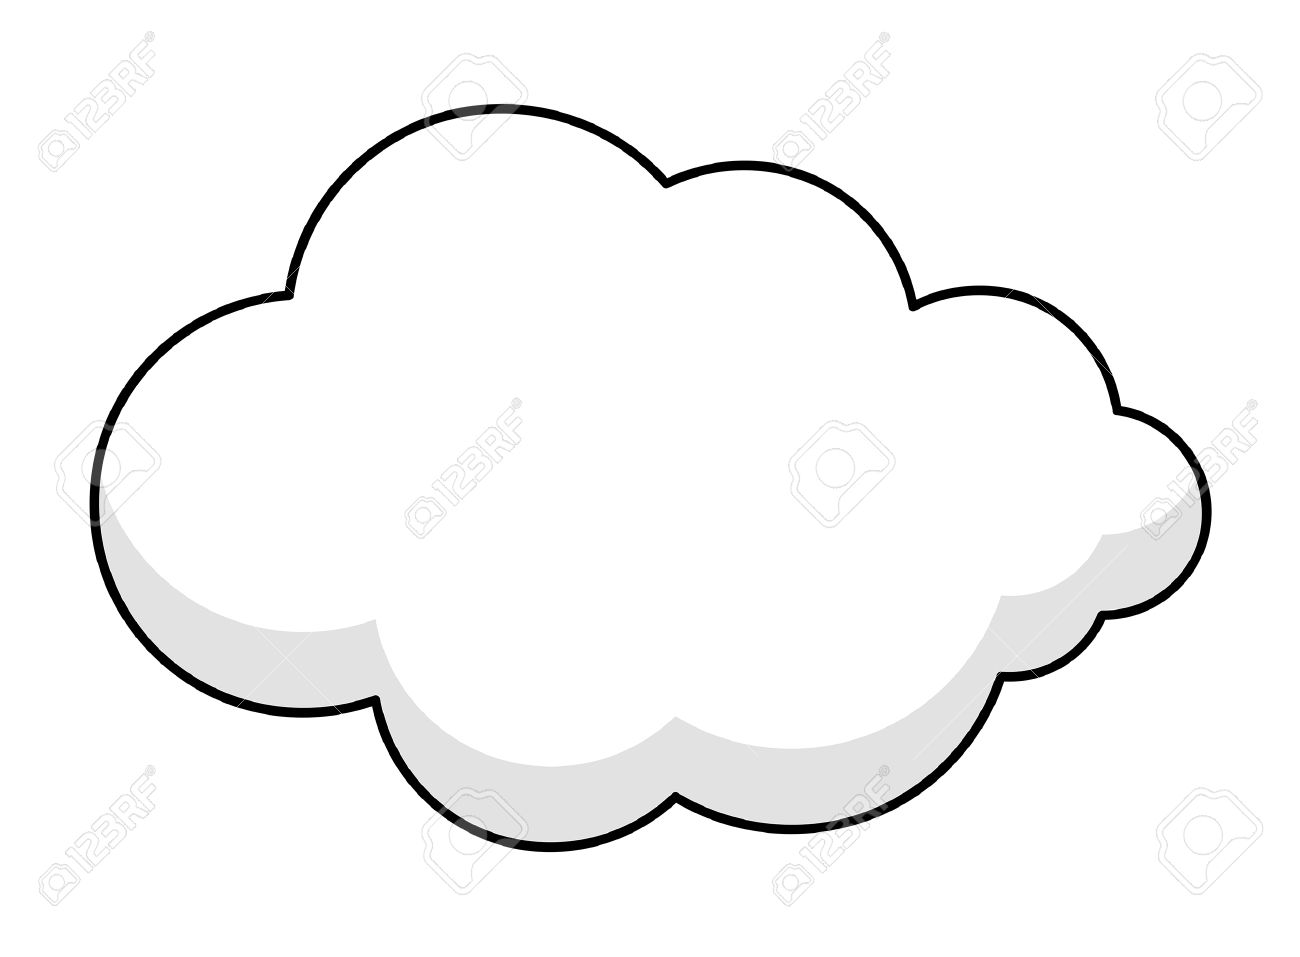 Fluffy Cloud Banner Royalty Free Cliparts, Vectors, And Stock.